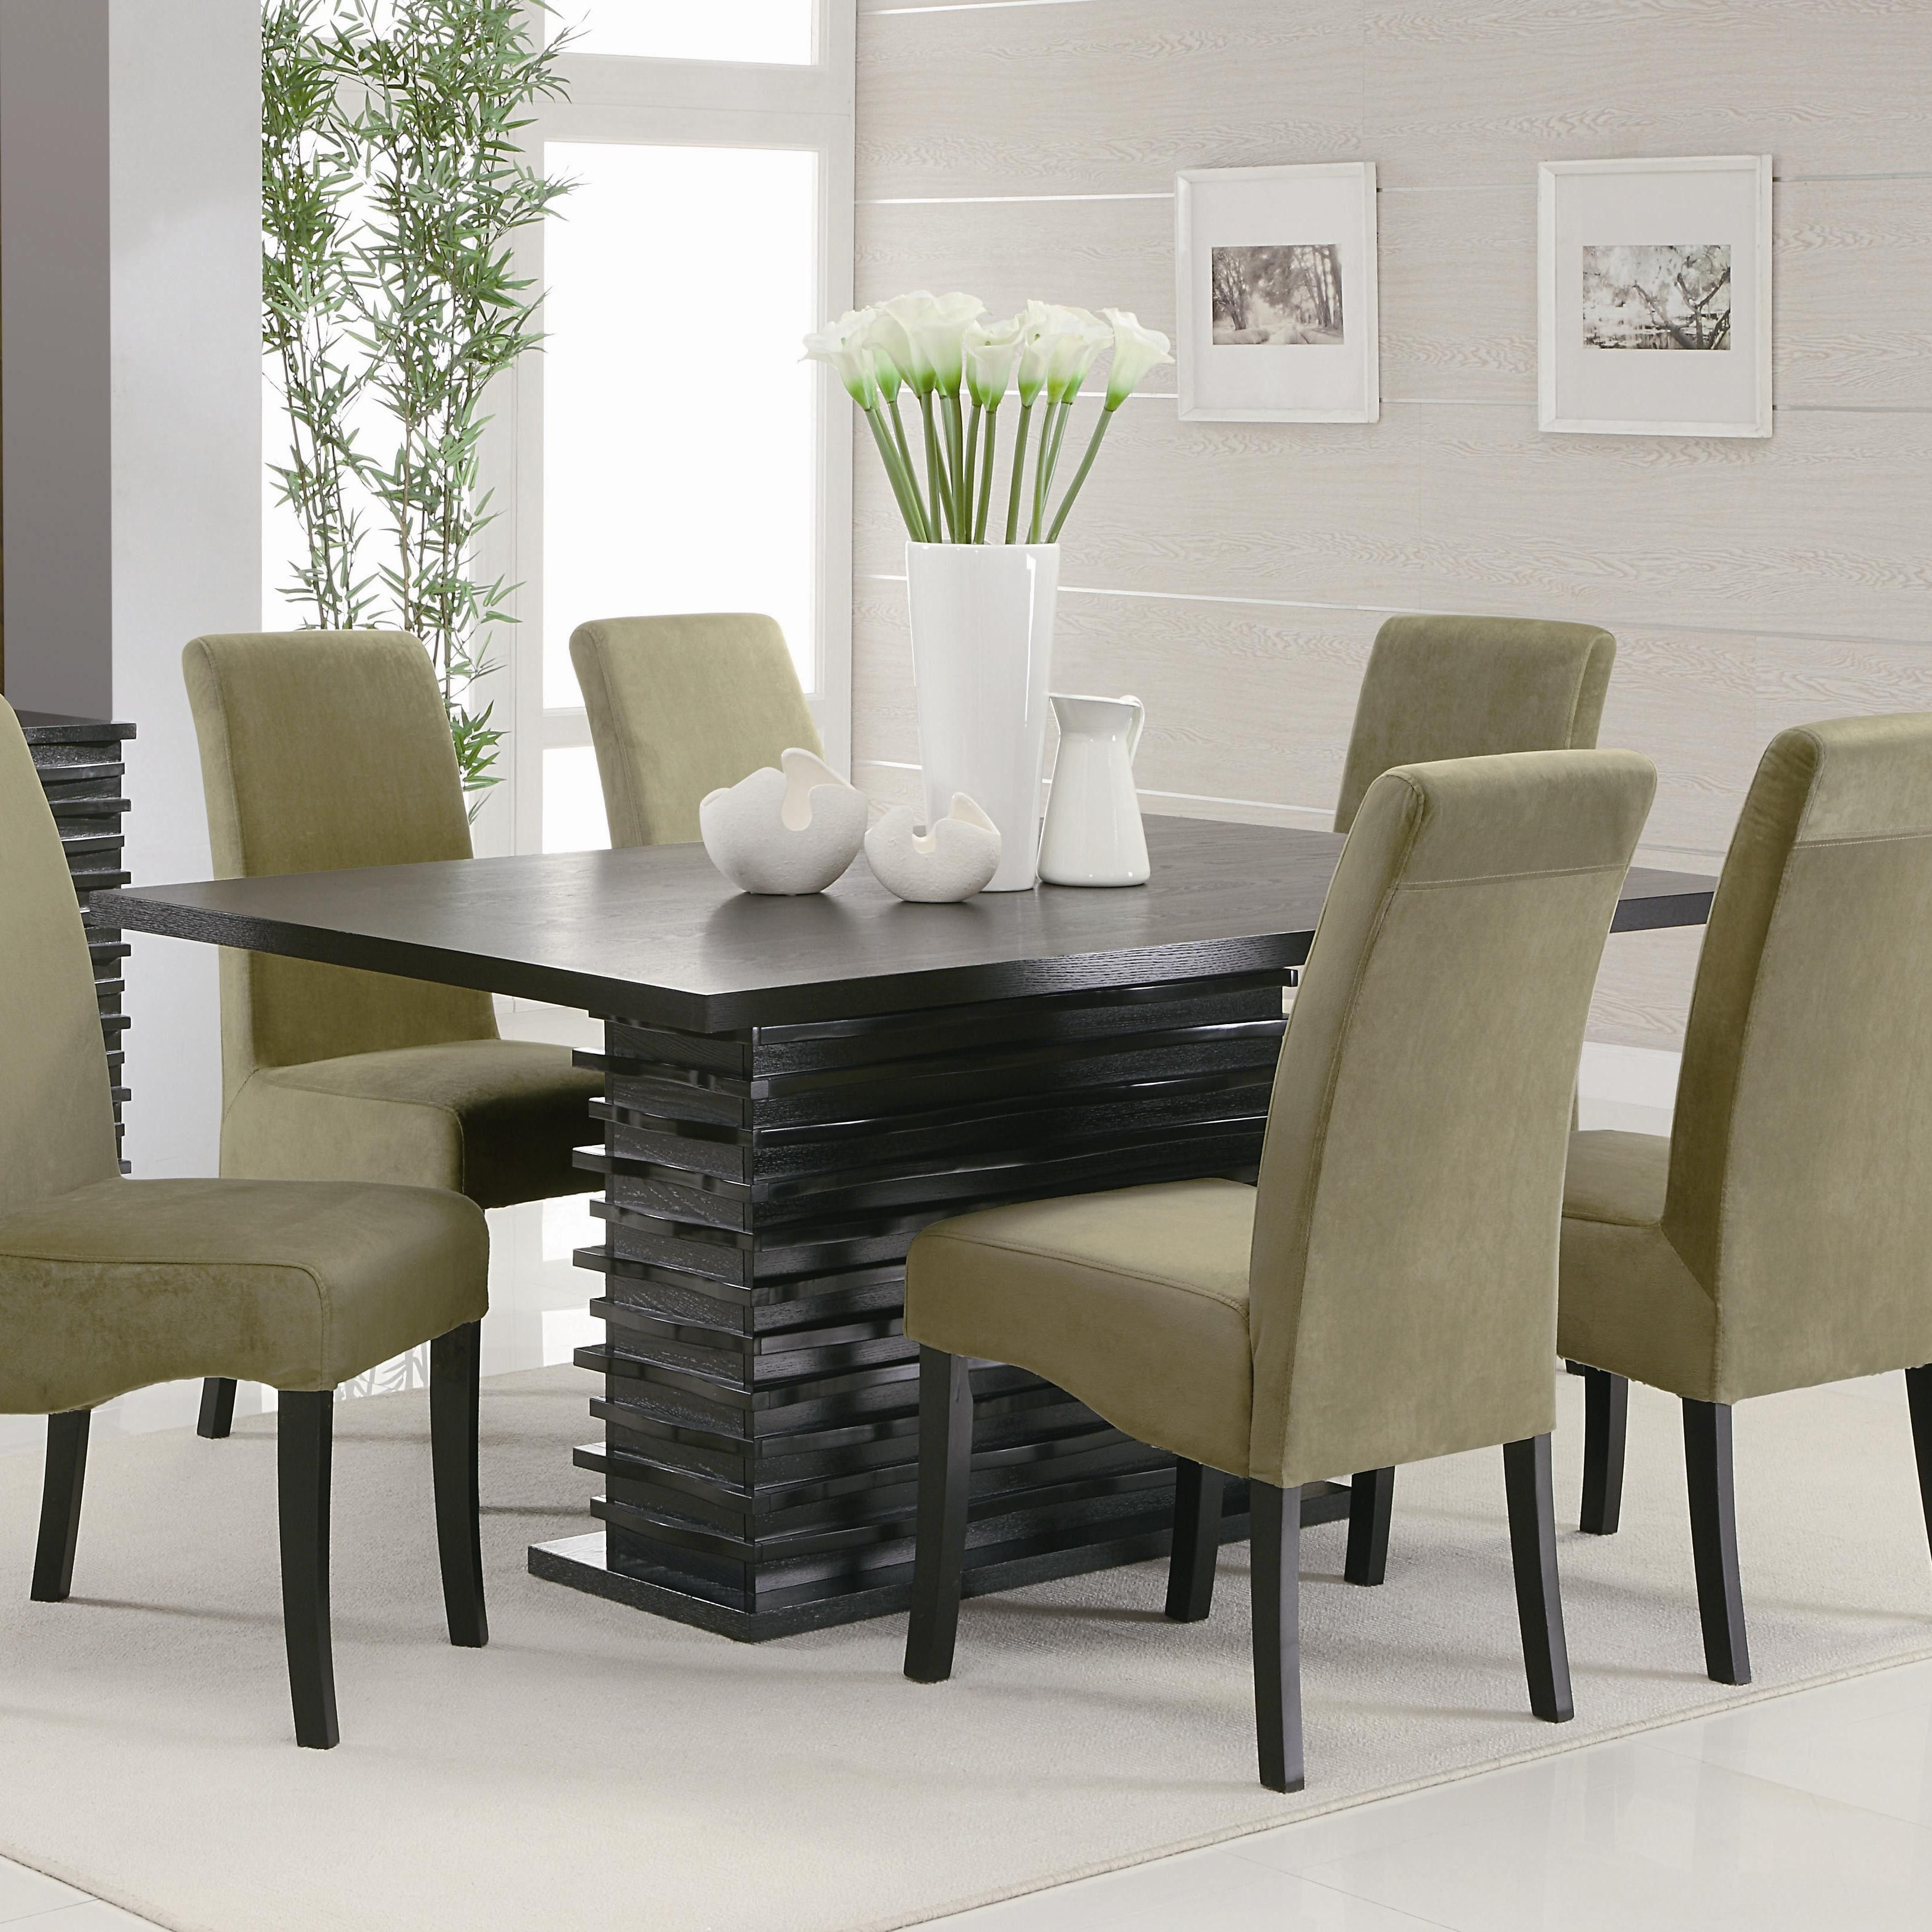 Sketch Of Dining Room Table Seats 12 For Big Family  Perfect Alluring Dining Room Table For 12 Decorating Inspiration